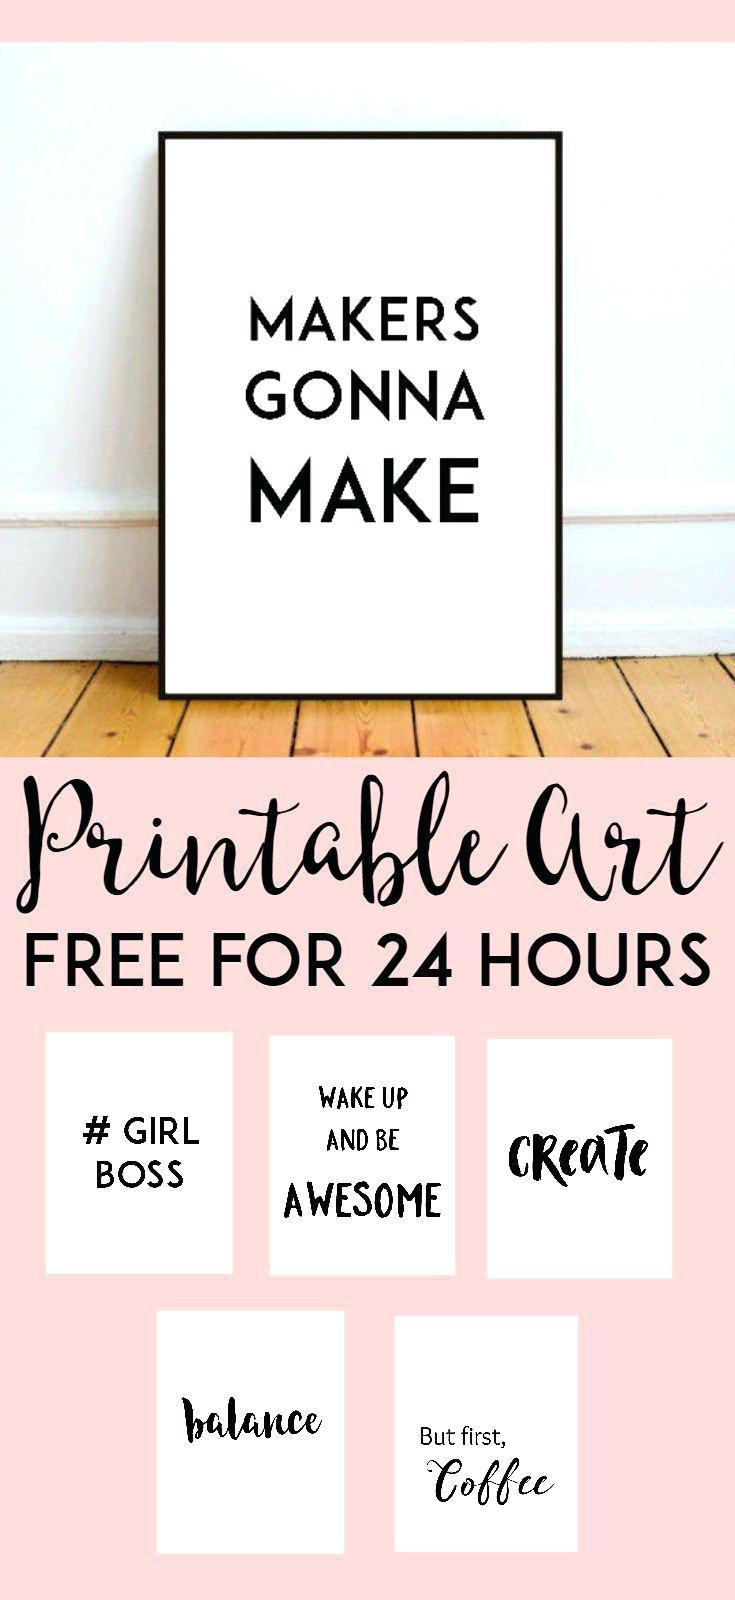 Wall Ideas : Wall Art Stickers Inspirational Quotes Inspirational In Motivational Wall Art For Office (View 3 of 20)